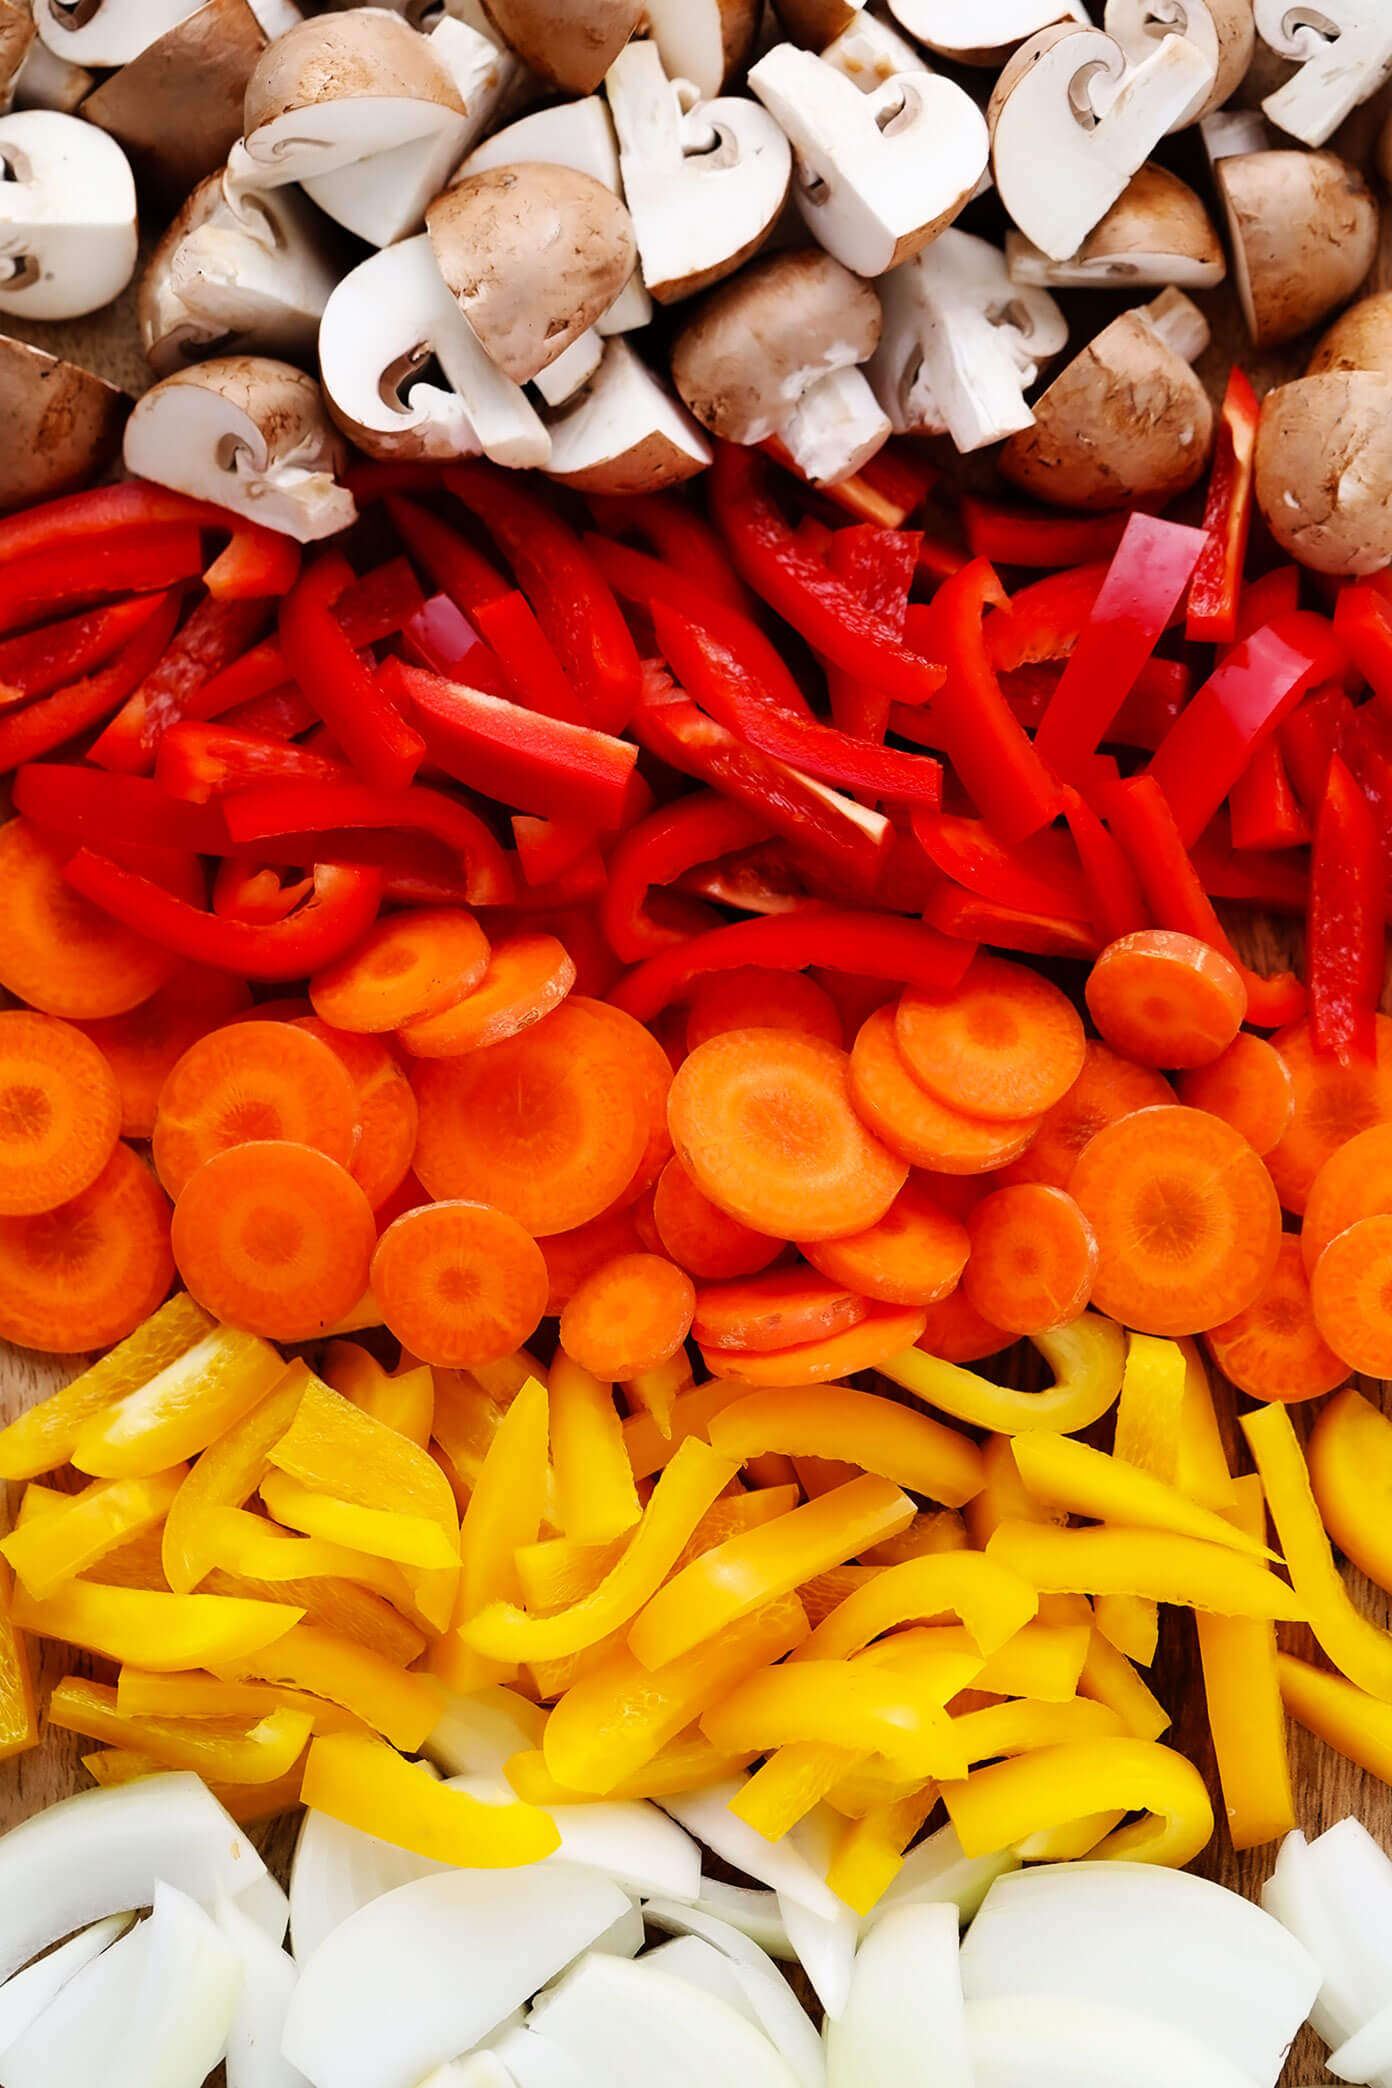 Rainbow veggies (mushrooms, bell peppers, carrots, onion) for Thai Chicken Curry recipe